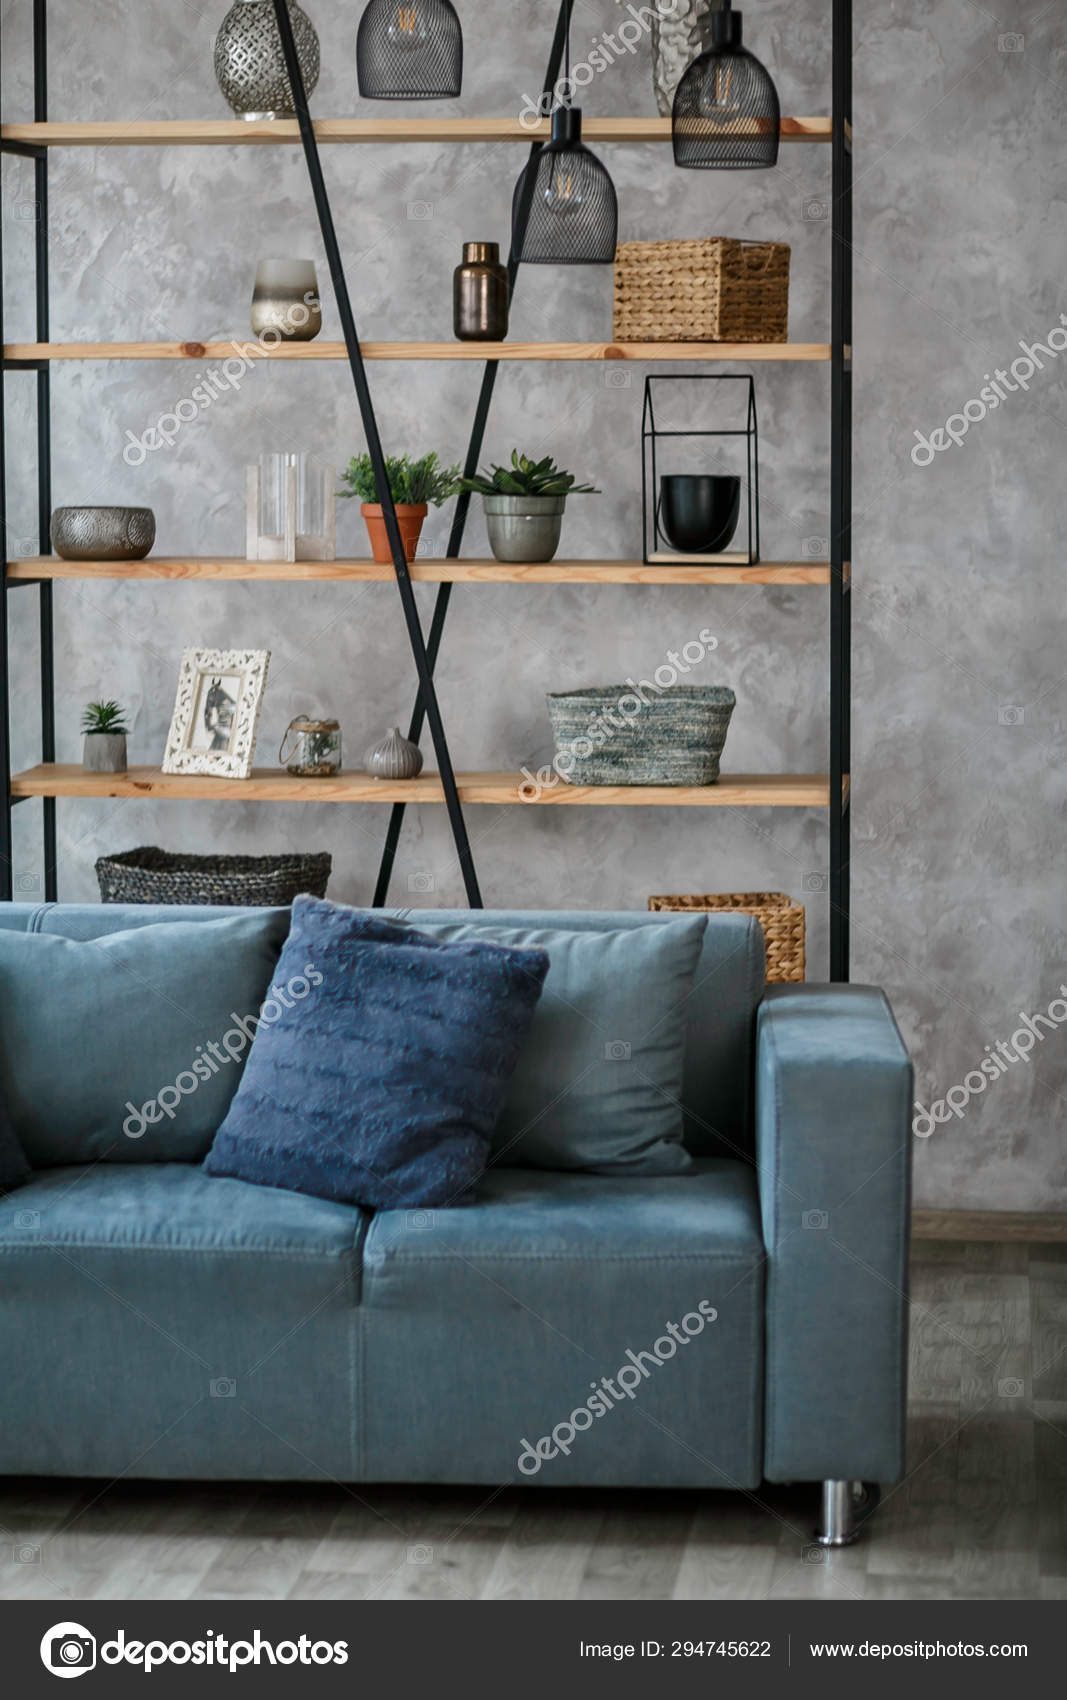 Modern Living Room Interior Blue Sofa Lamp Green Plants Grey Stock Photo Image By Pirotehnik 294745622